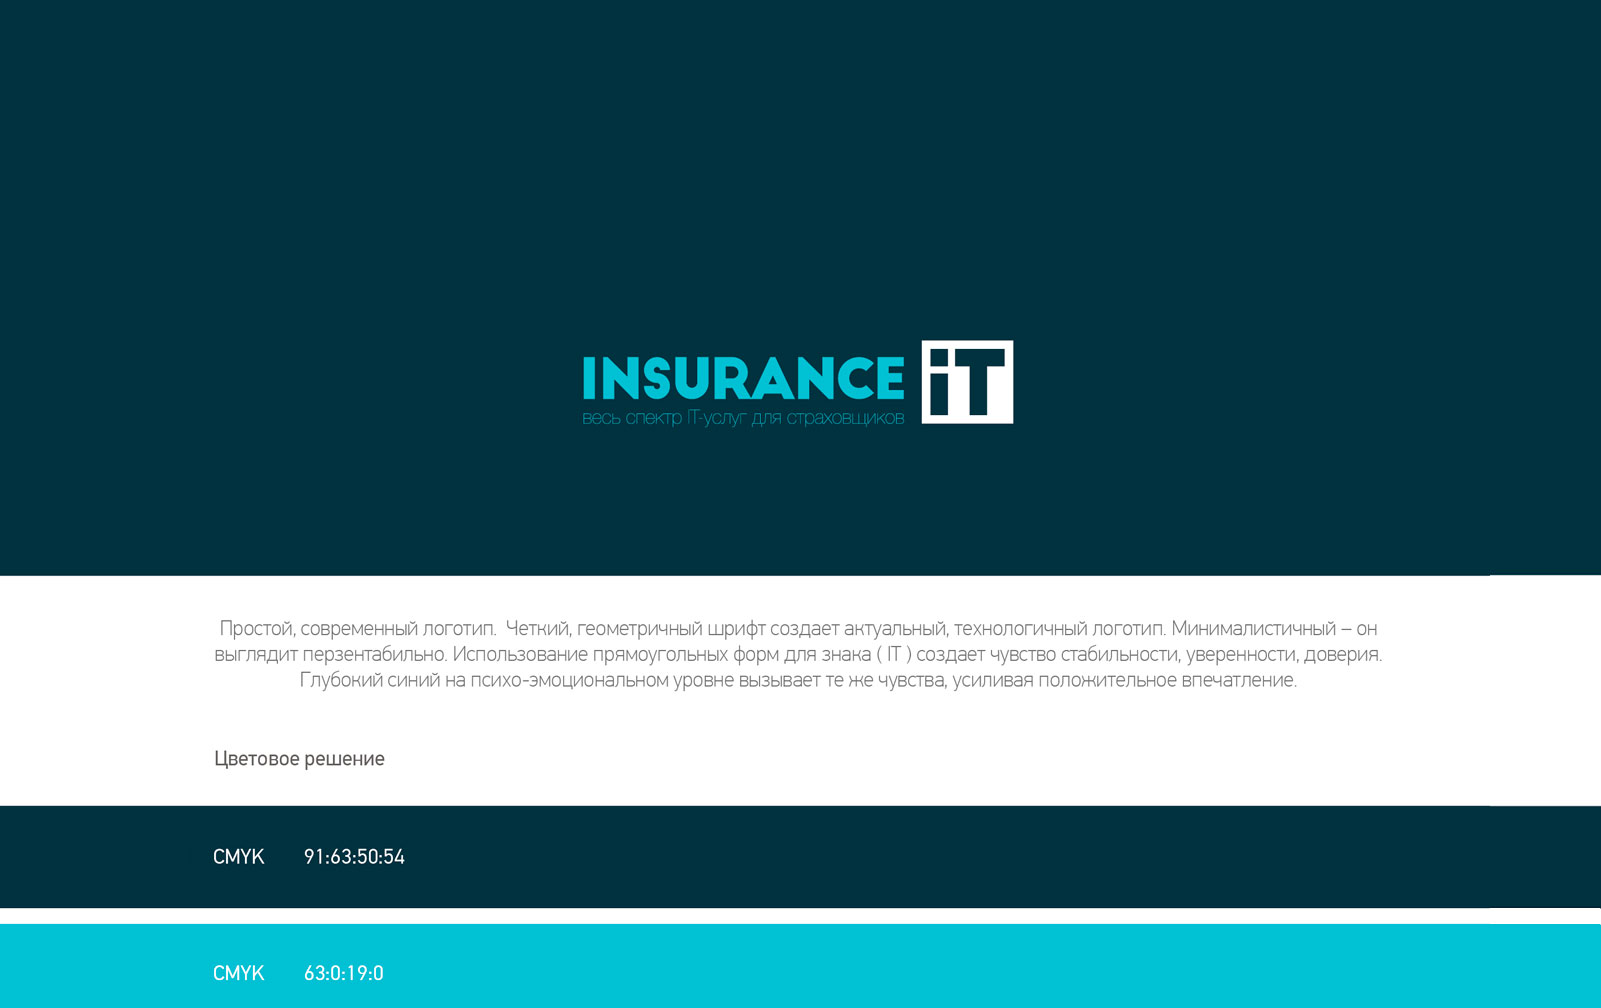 insuranceit_logo_big